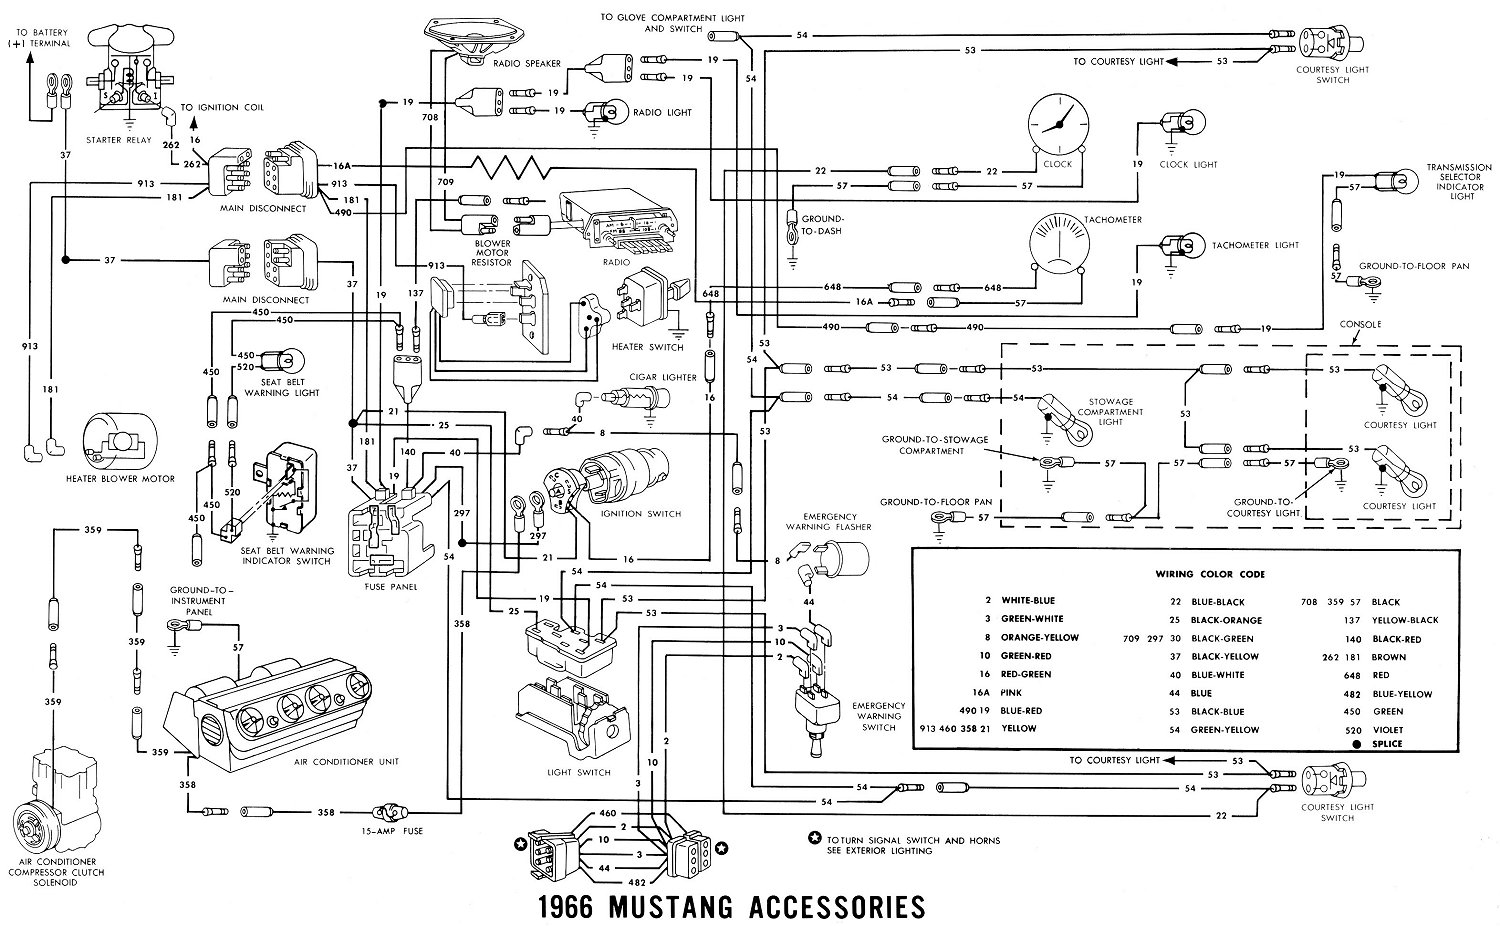 Diagram 1967 Ford Mustang Wire Diagram Full Version Hd Quality Wire Diagram Pvdiagramxbowes Ufficiestudi It